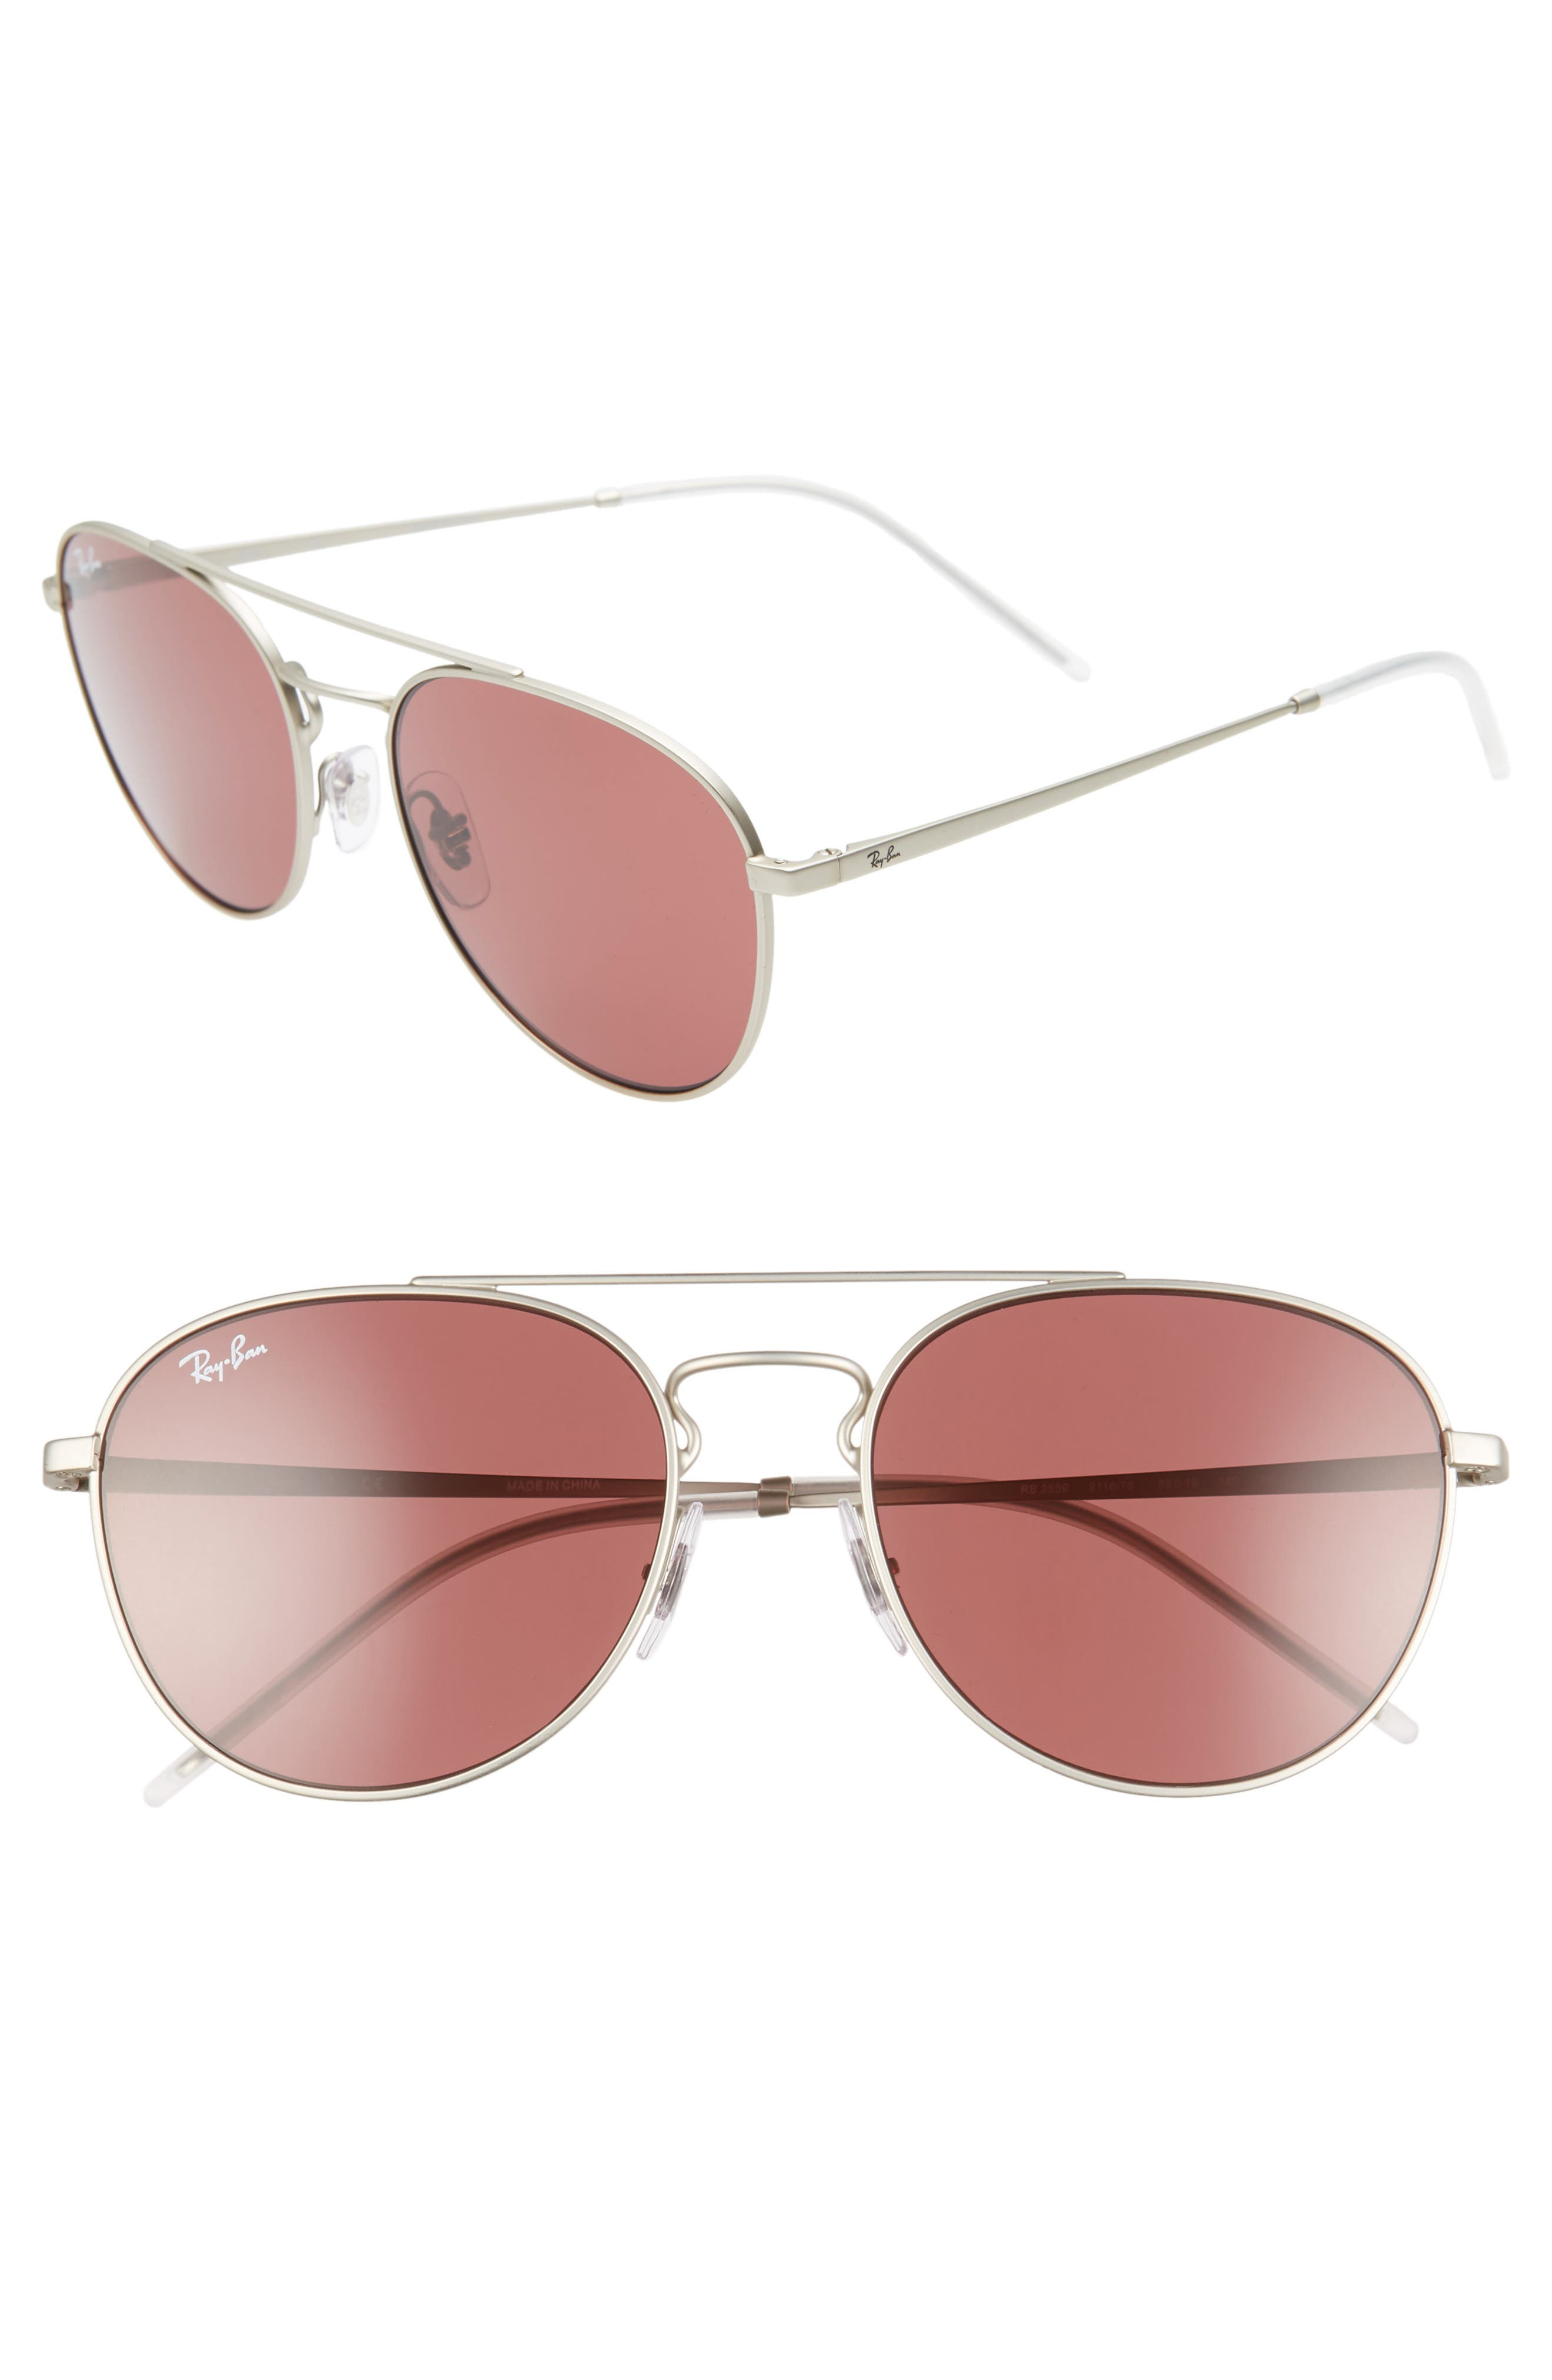 Ray-Ban 55Mm Aviator Sunglasses - Silver/ Red Solid